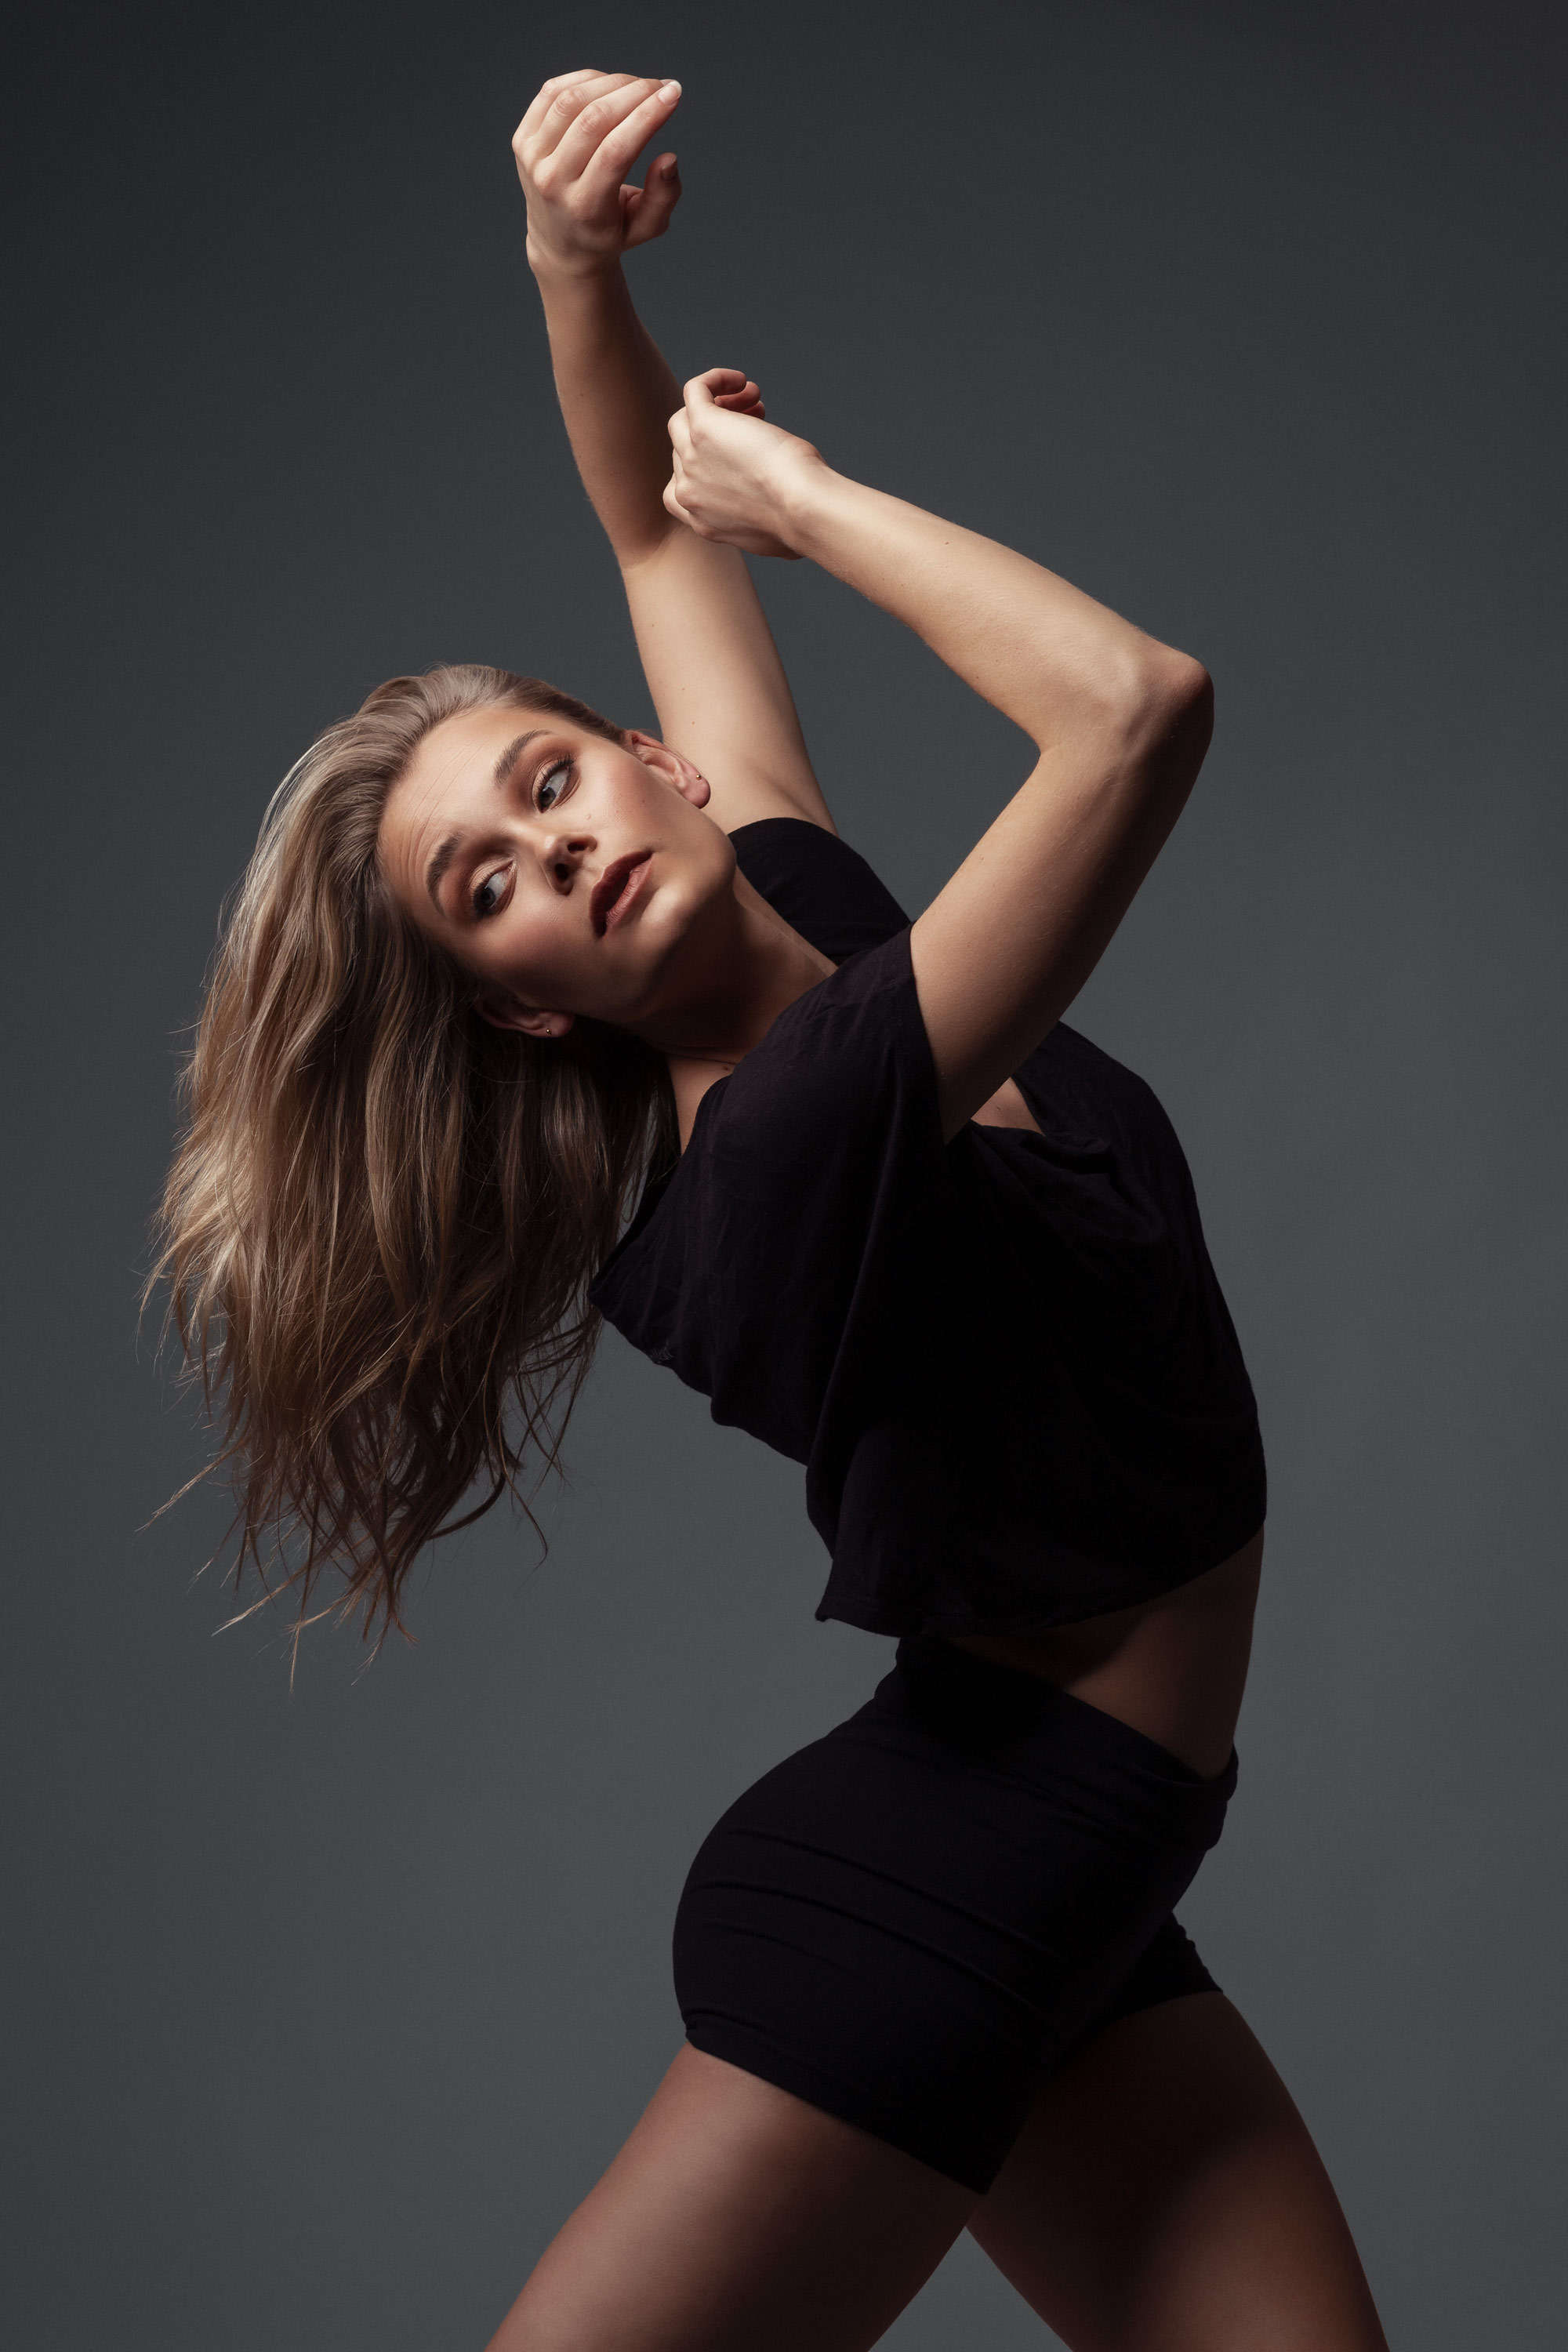 Danseres Odile Wyers